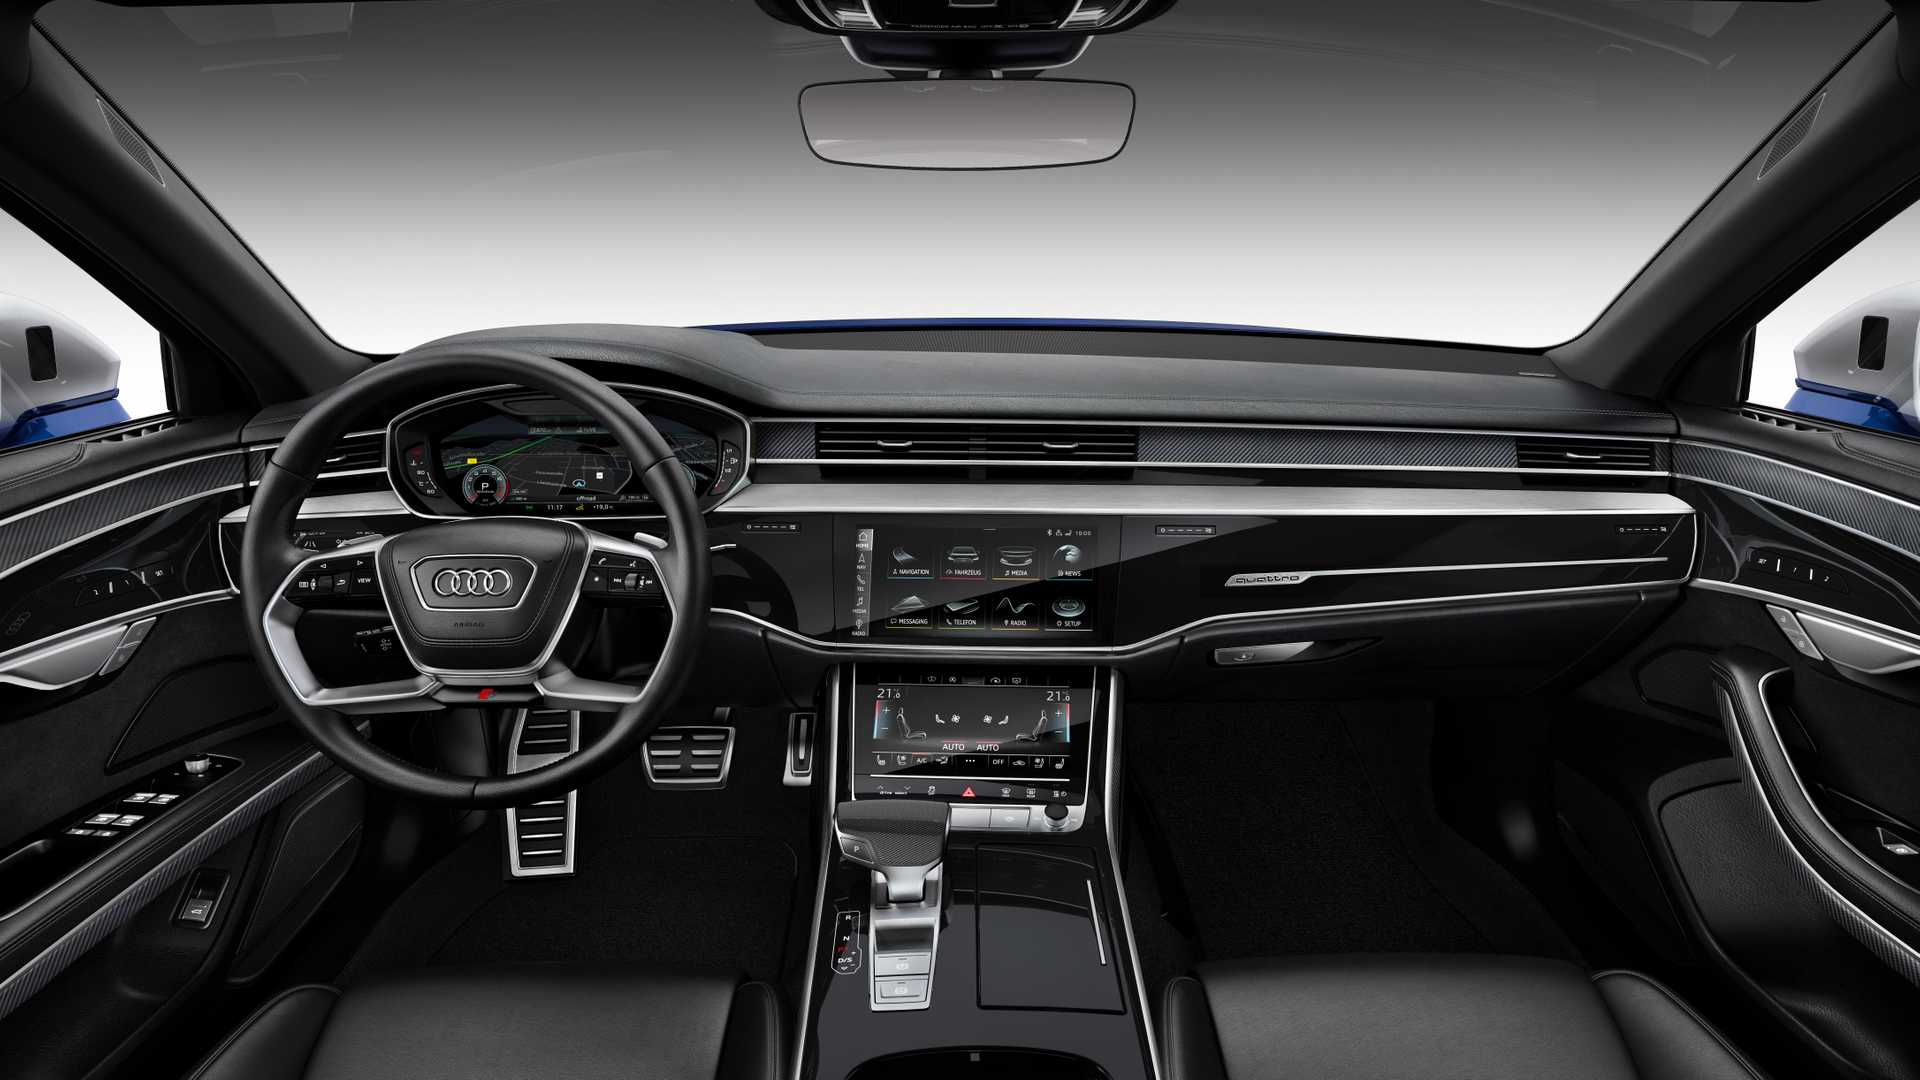 2020 Audi S8 Arrives With Subtle Style 563 Hp Twin Turbo V8